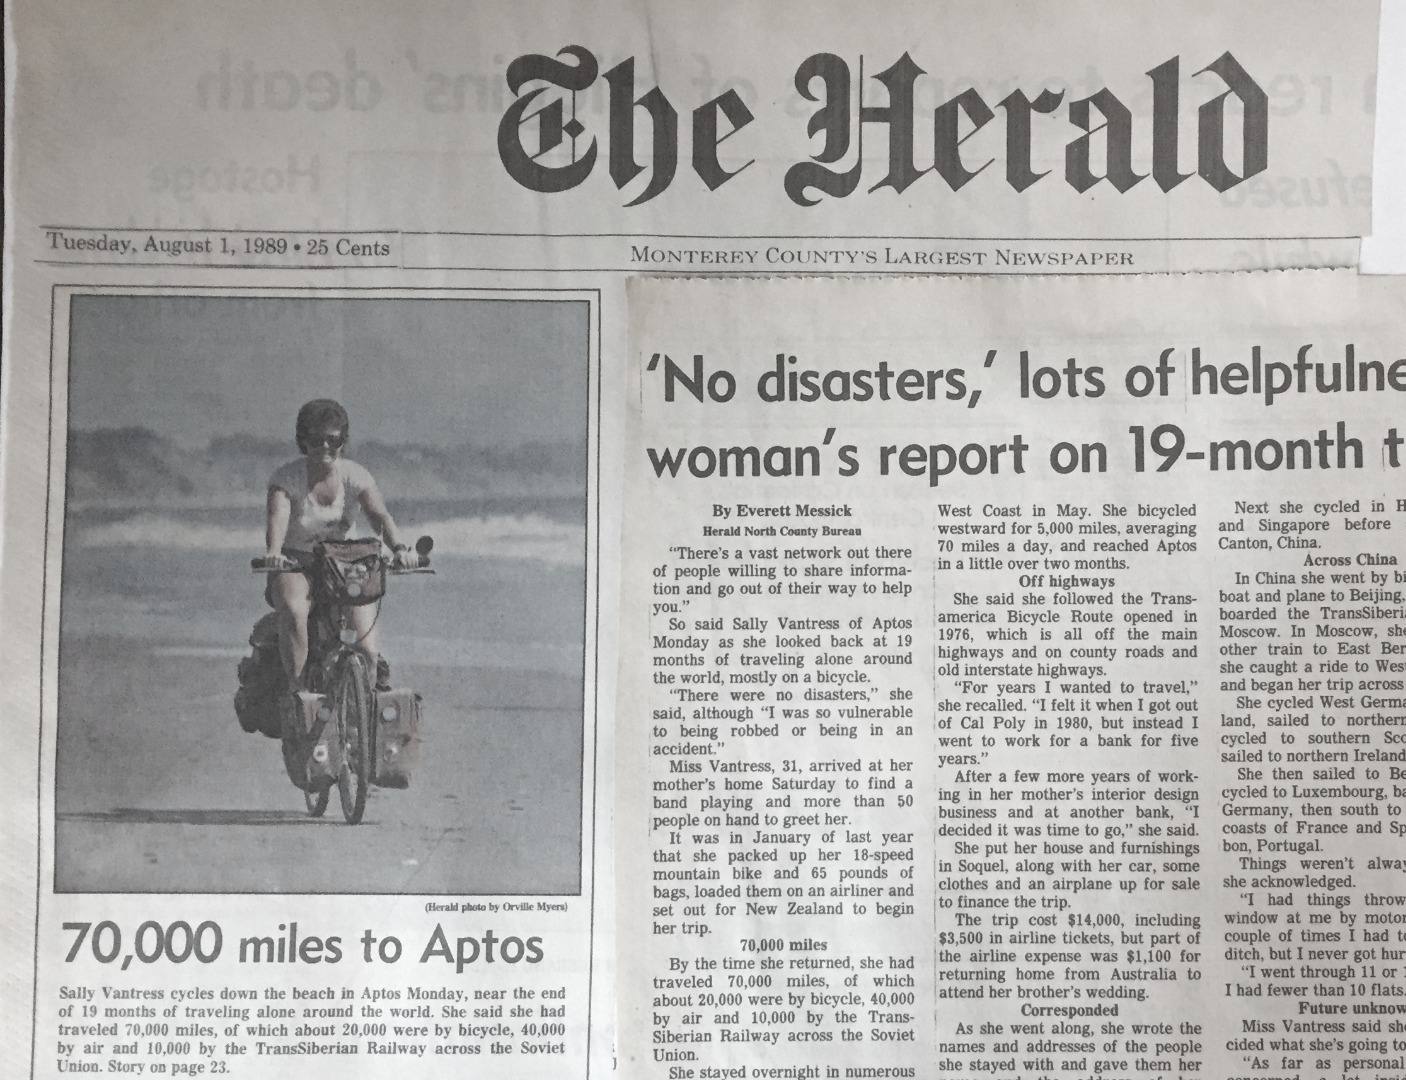 The Monterey Herald